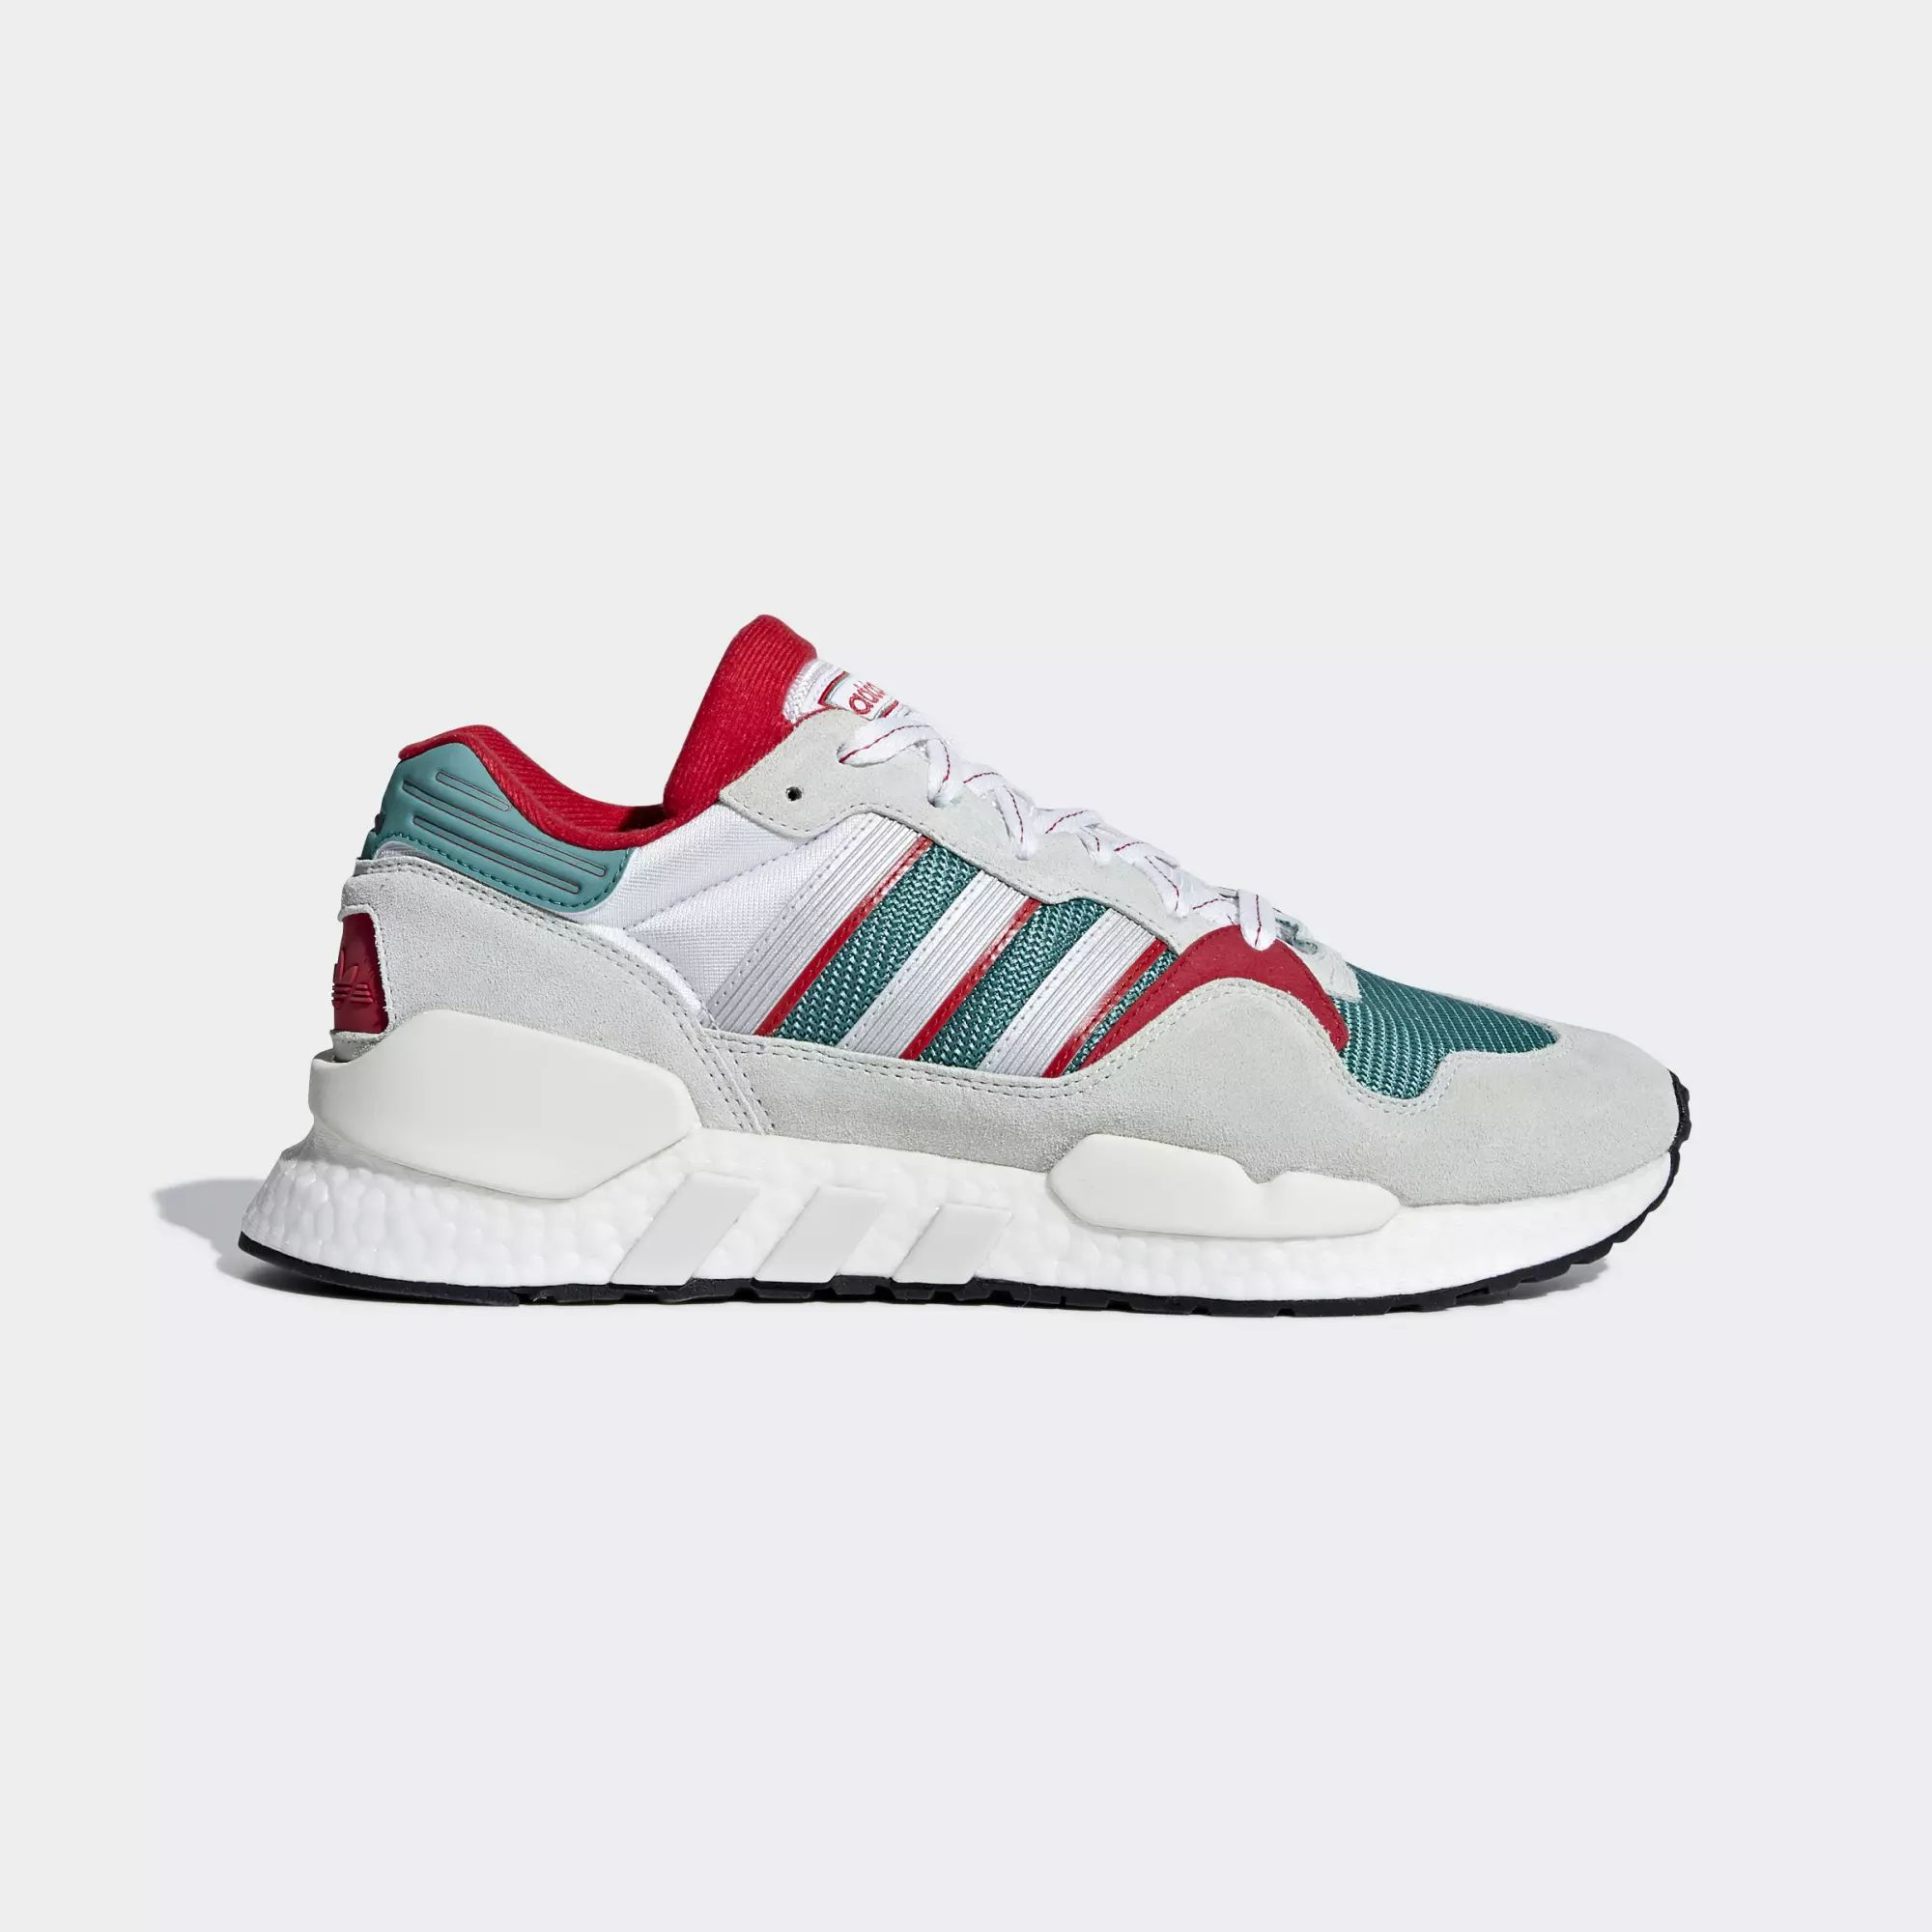 Adidas ZX930XEQT Shoes - Silver Met / Future Hydro / Ash Silver